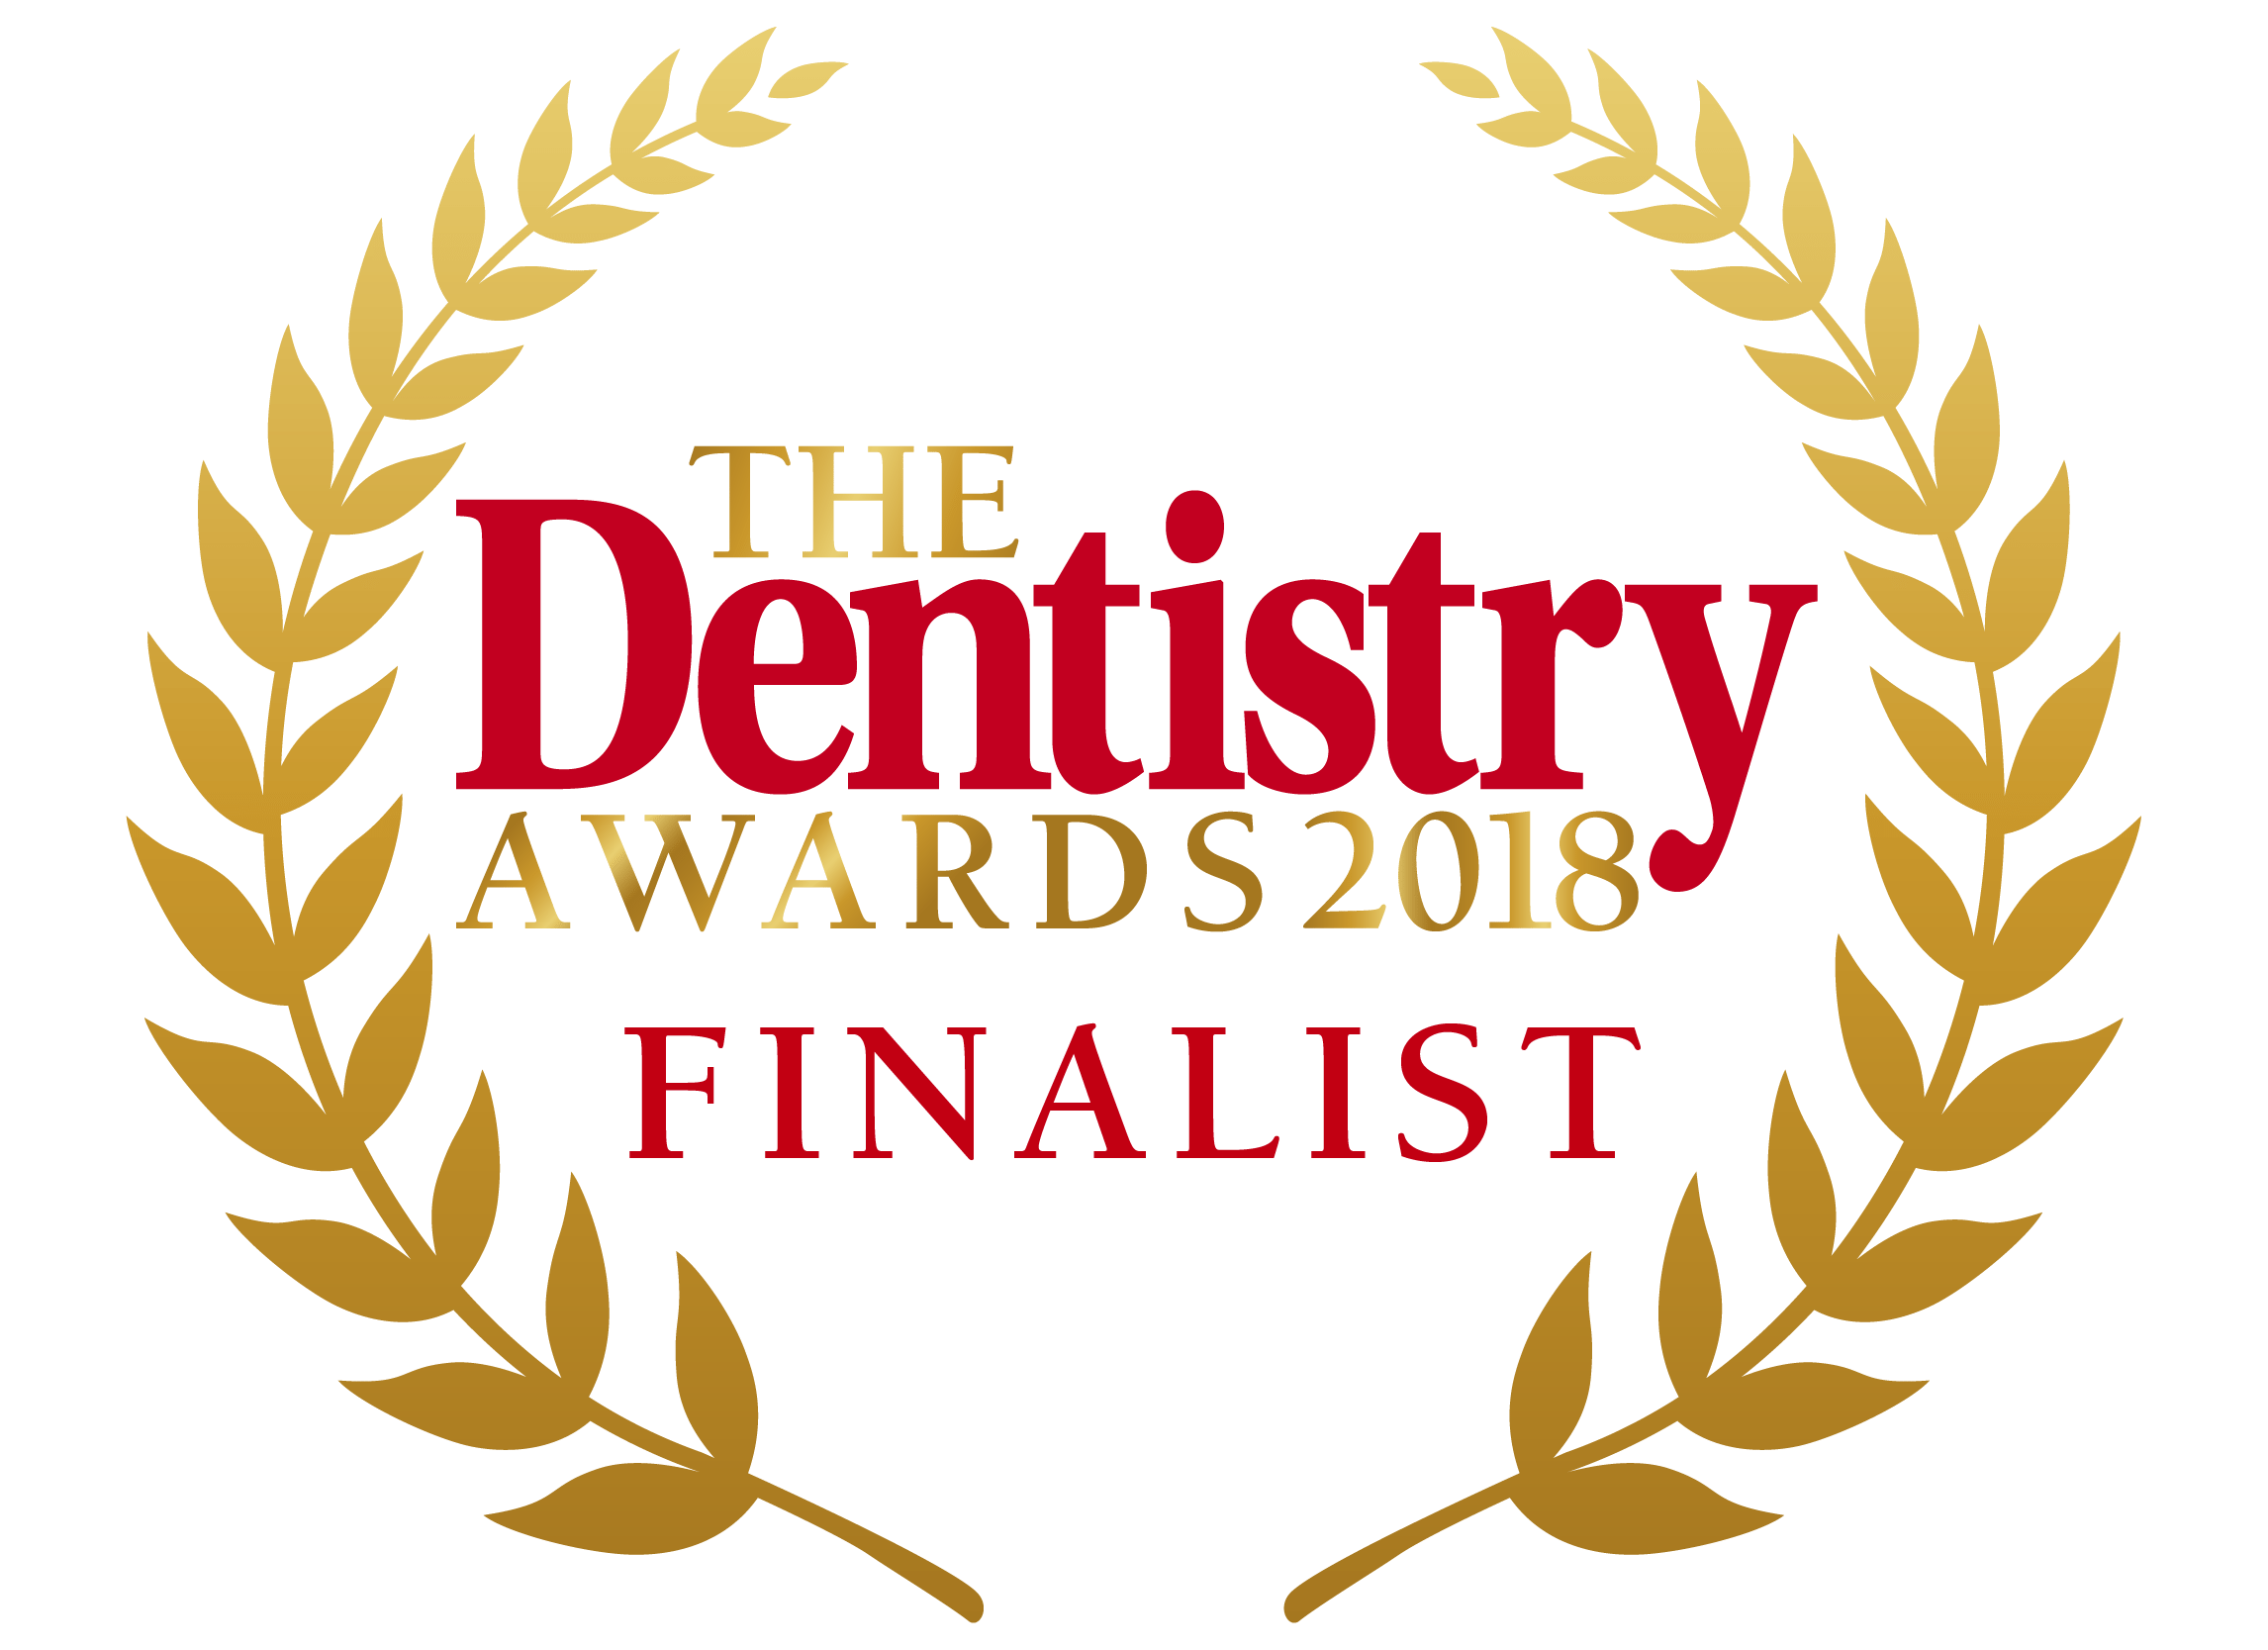 Best Dental Practice UK 2018